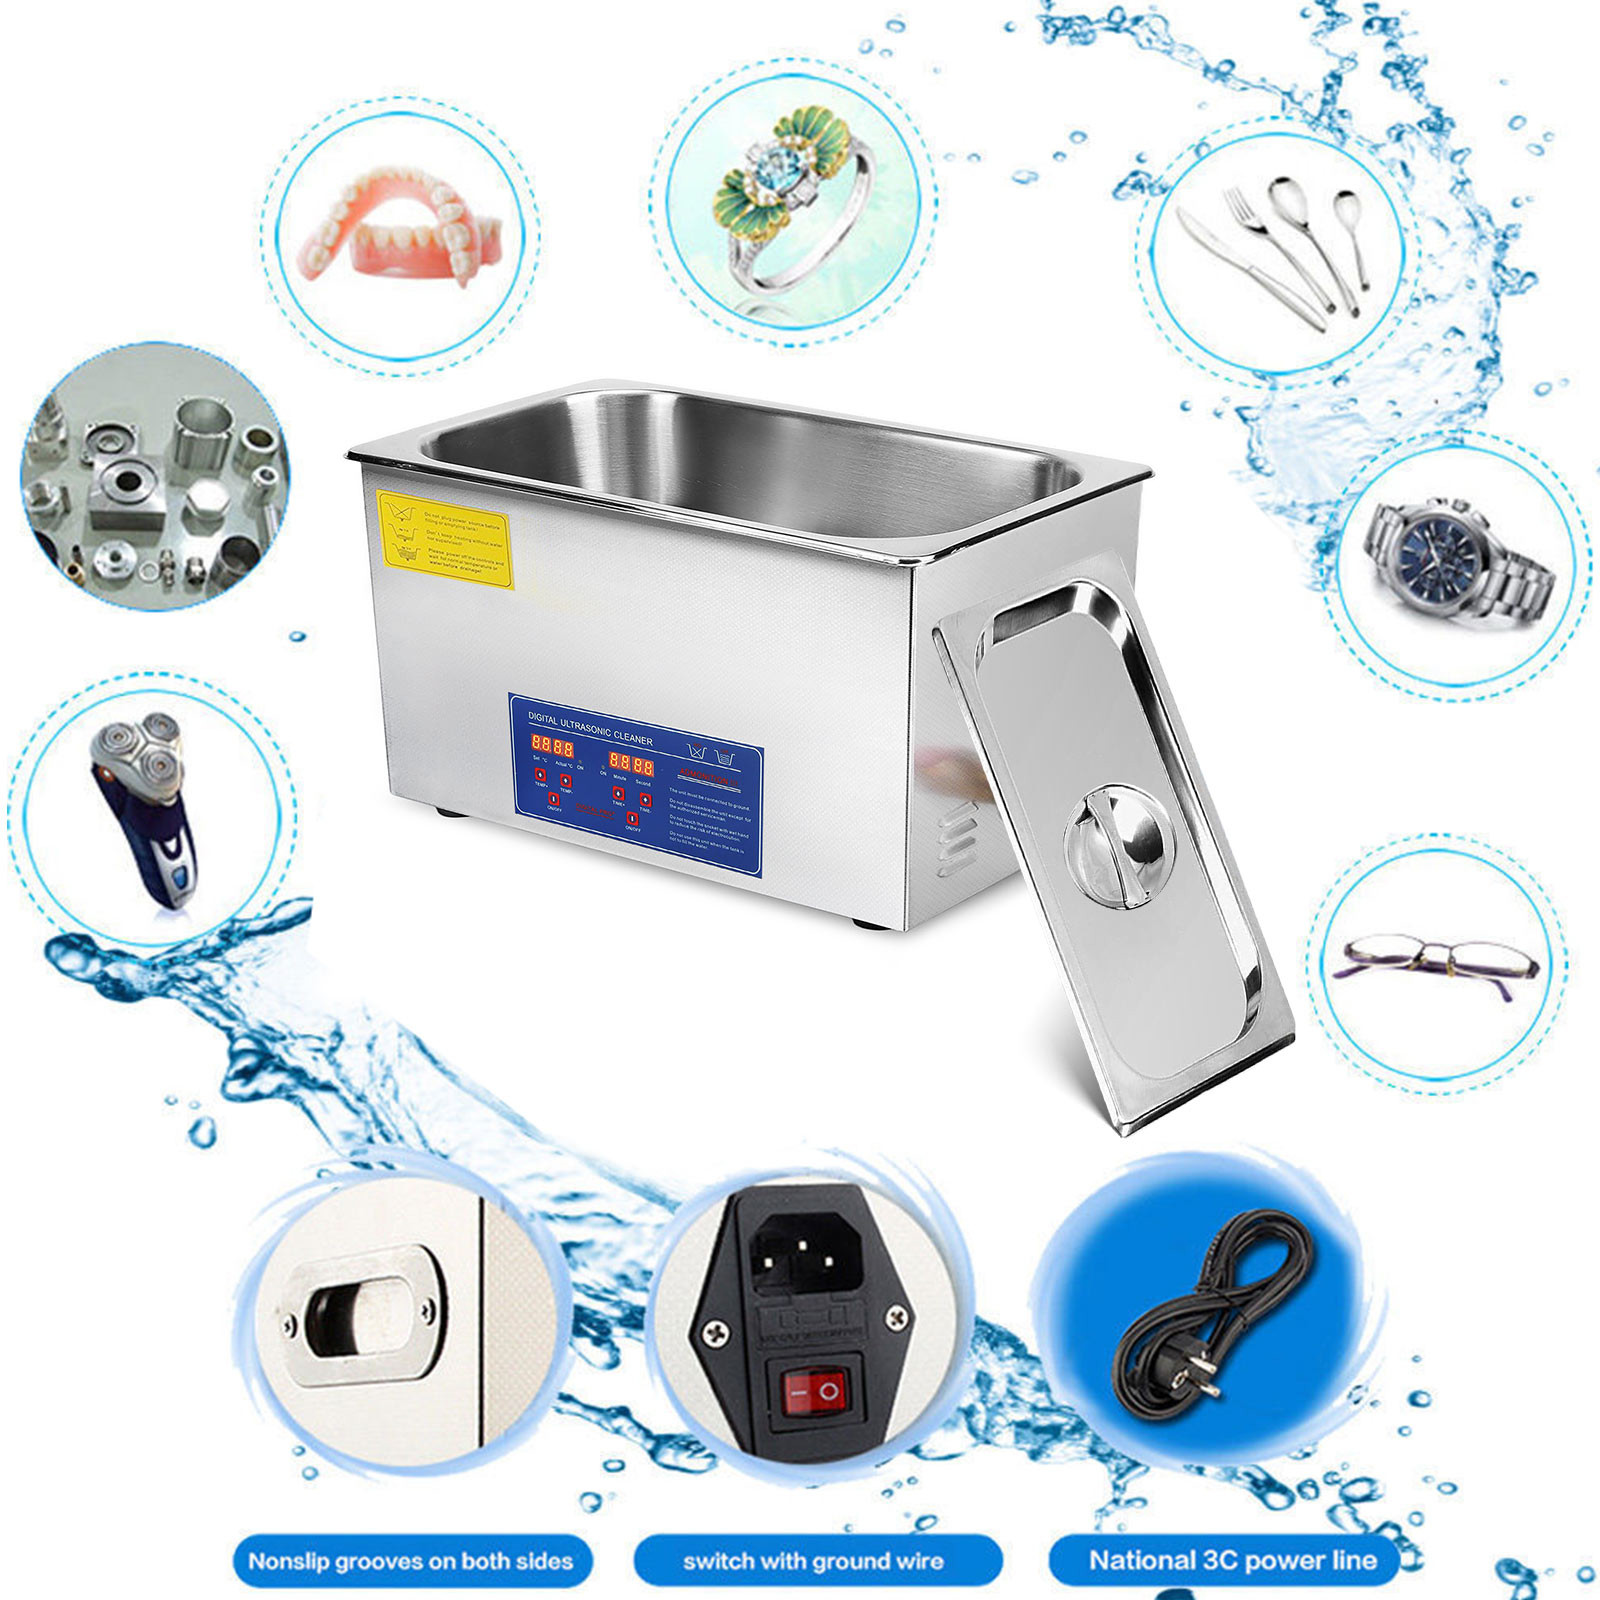 Multi-Ultrasonic-Cleaner-Supplies-Jewelry-1-3-2L-3L-6L-10L-15L-22L-30L thumbnail 94